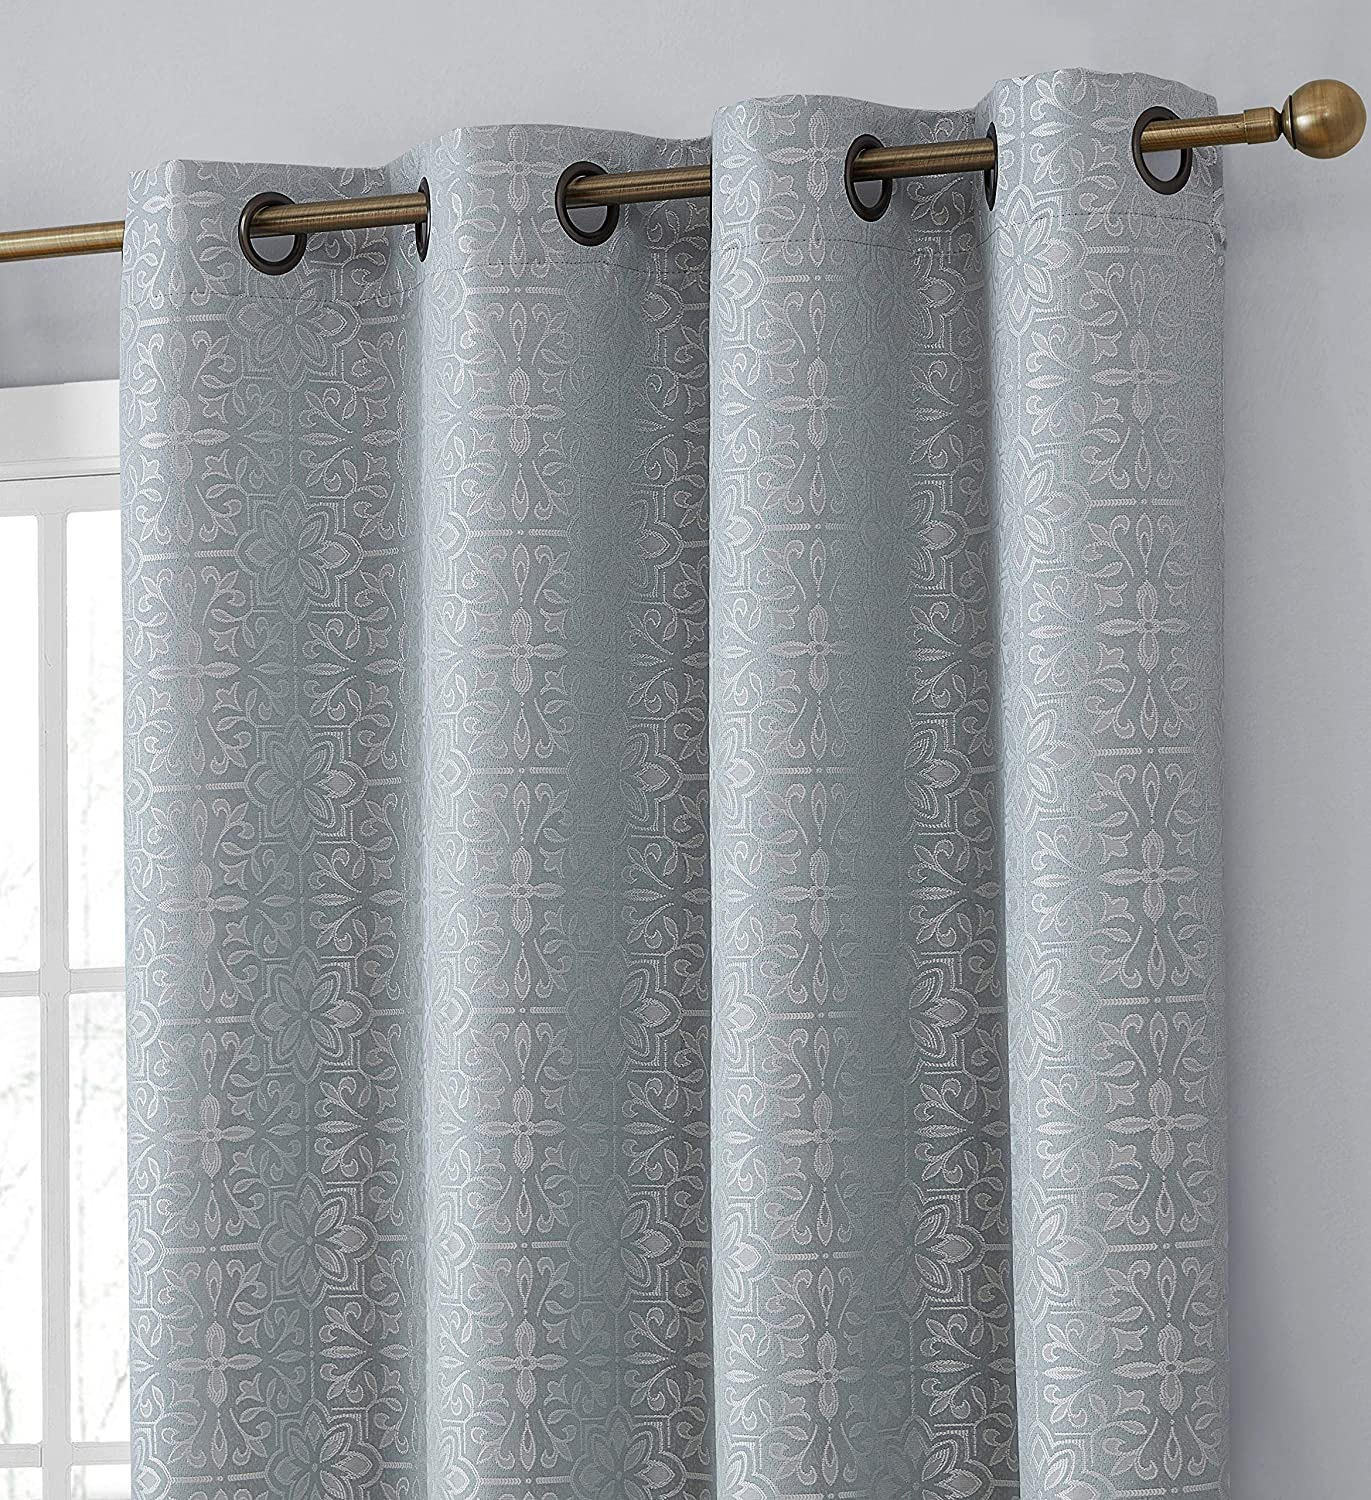 HLC.ME Mia Moroccan Tile 100% Complete Blackout Heavy Thermal Insulated Energy Savings Noise Reduction Grommet Curtain Long Drapery Panels for Bedroom & Office, 2 Panels (52 W x 84 L, Seafoam Green)